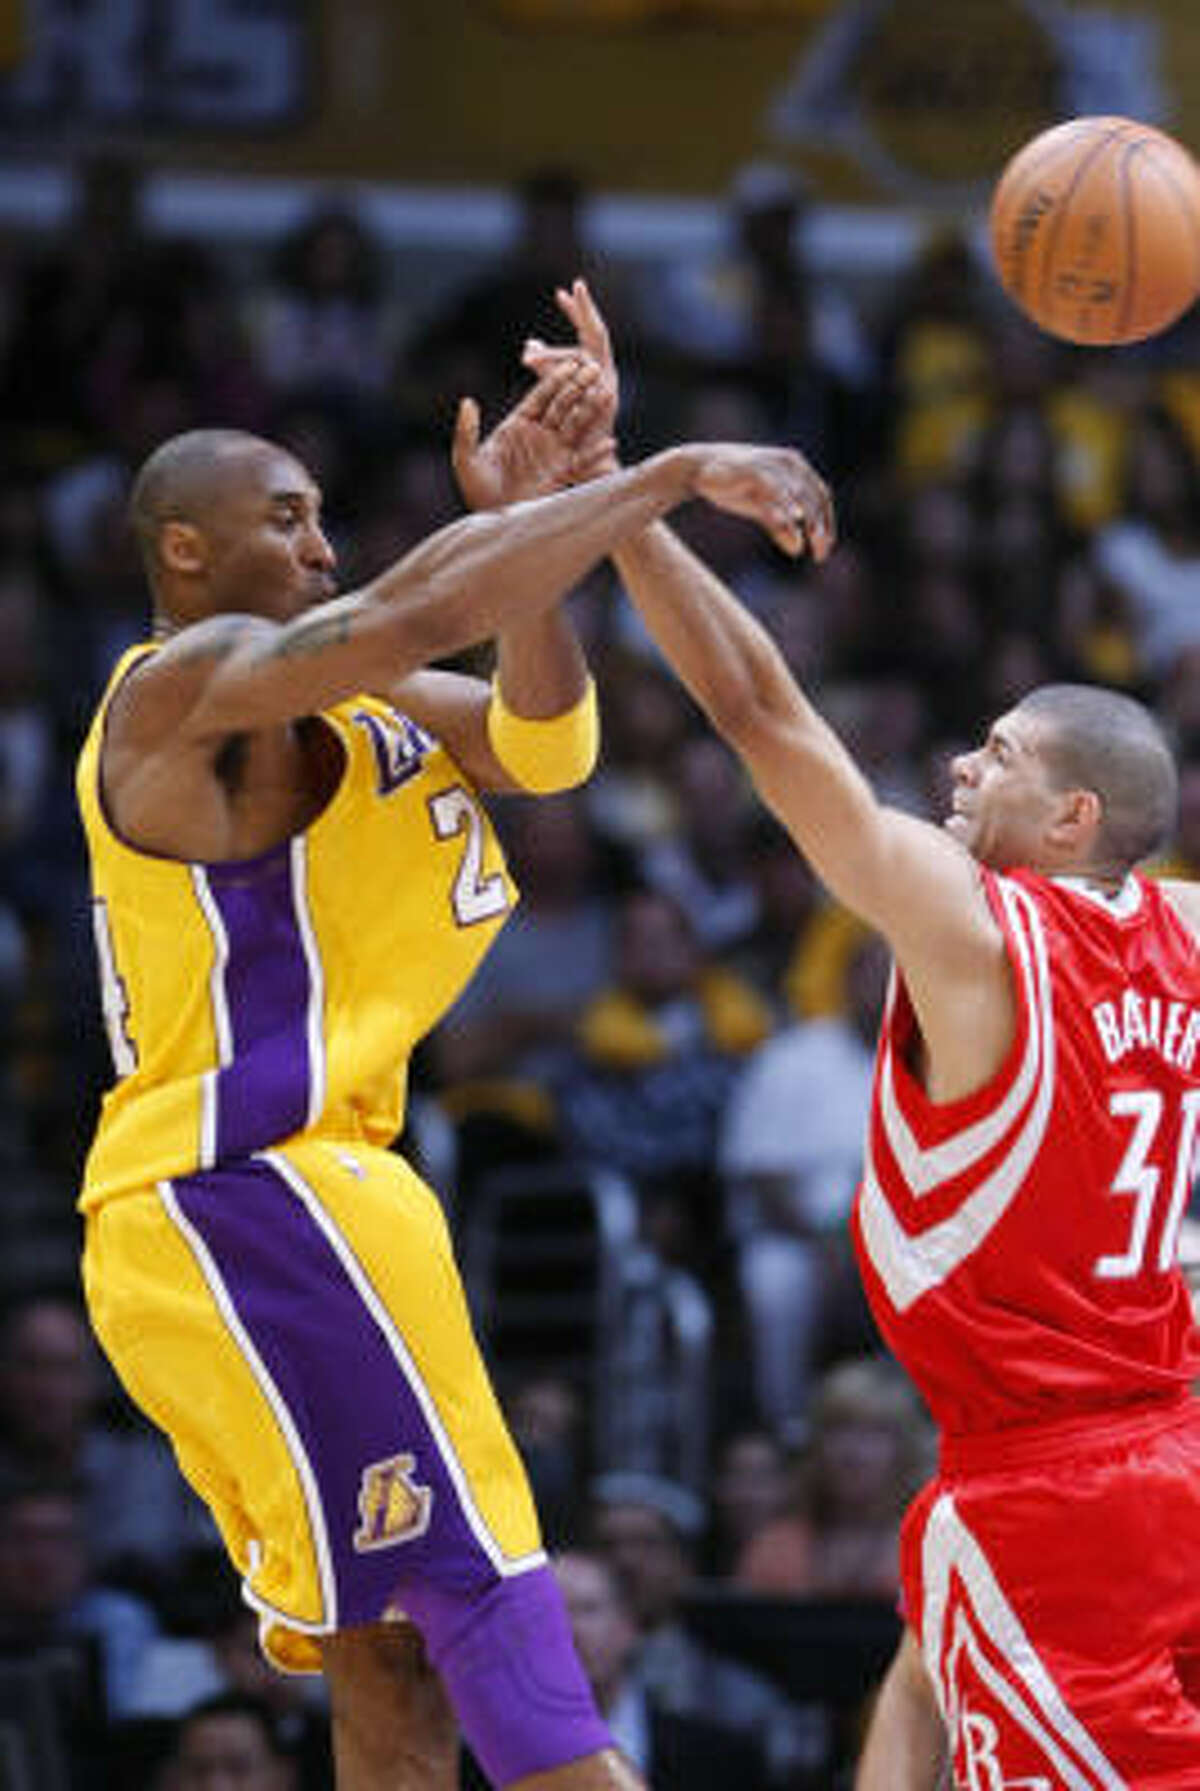 Lakers guard Kobe Bryant, left, has to dish the ball as forward Shane Battier defends in the first quarter.